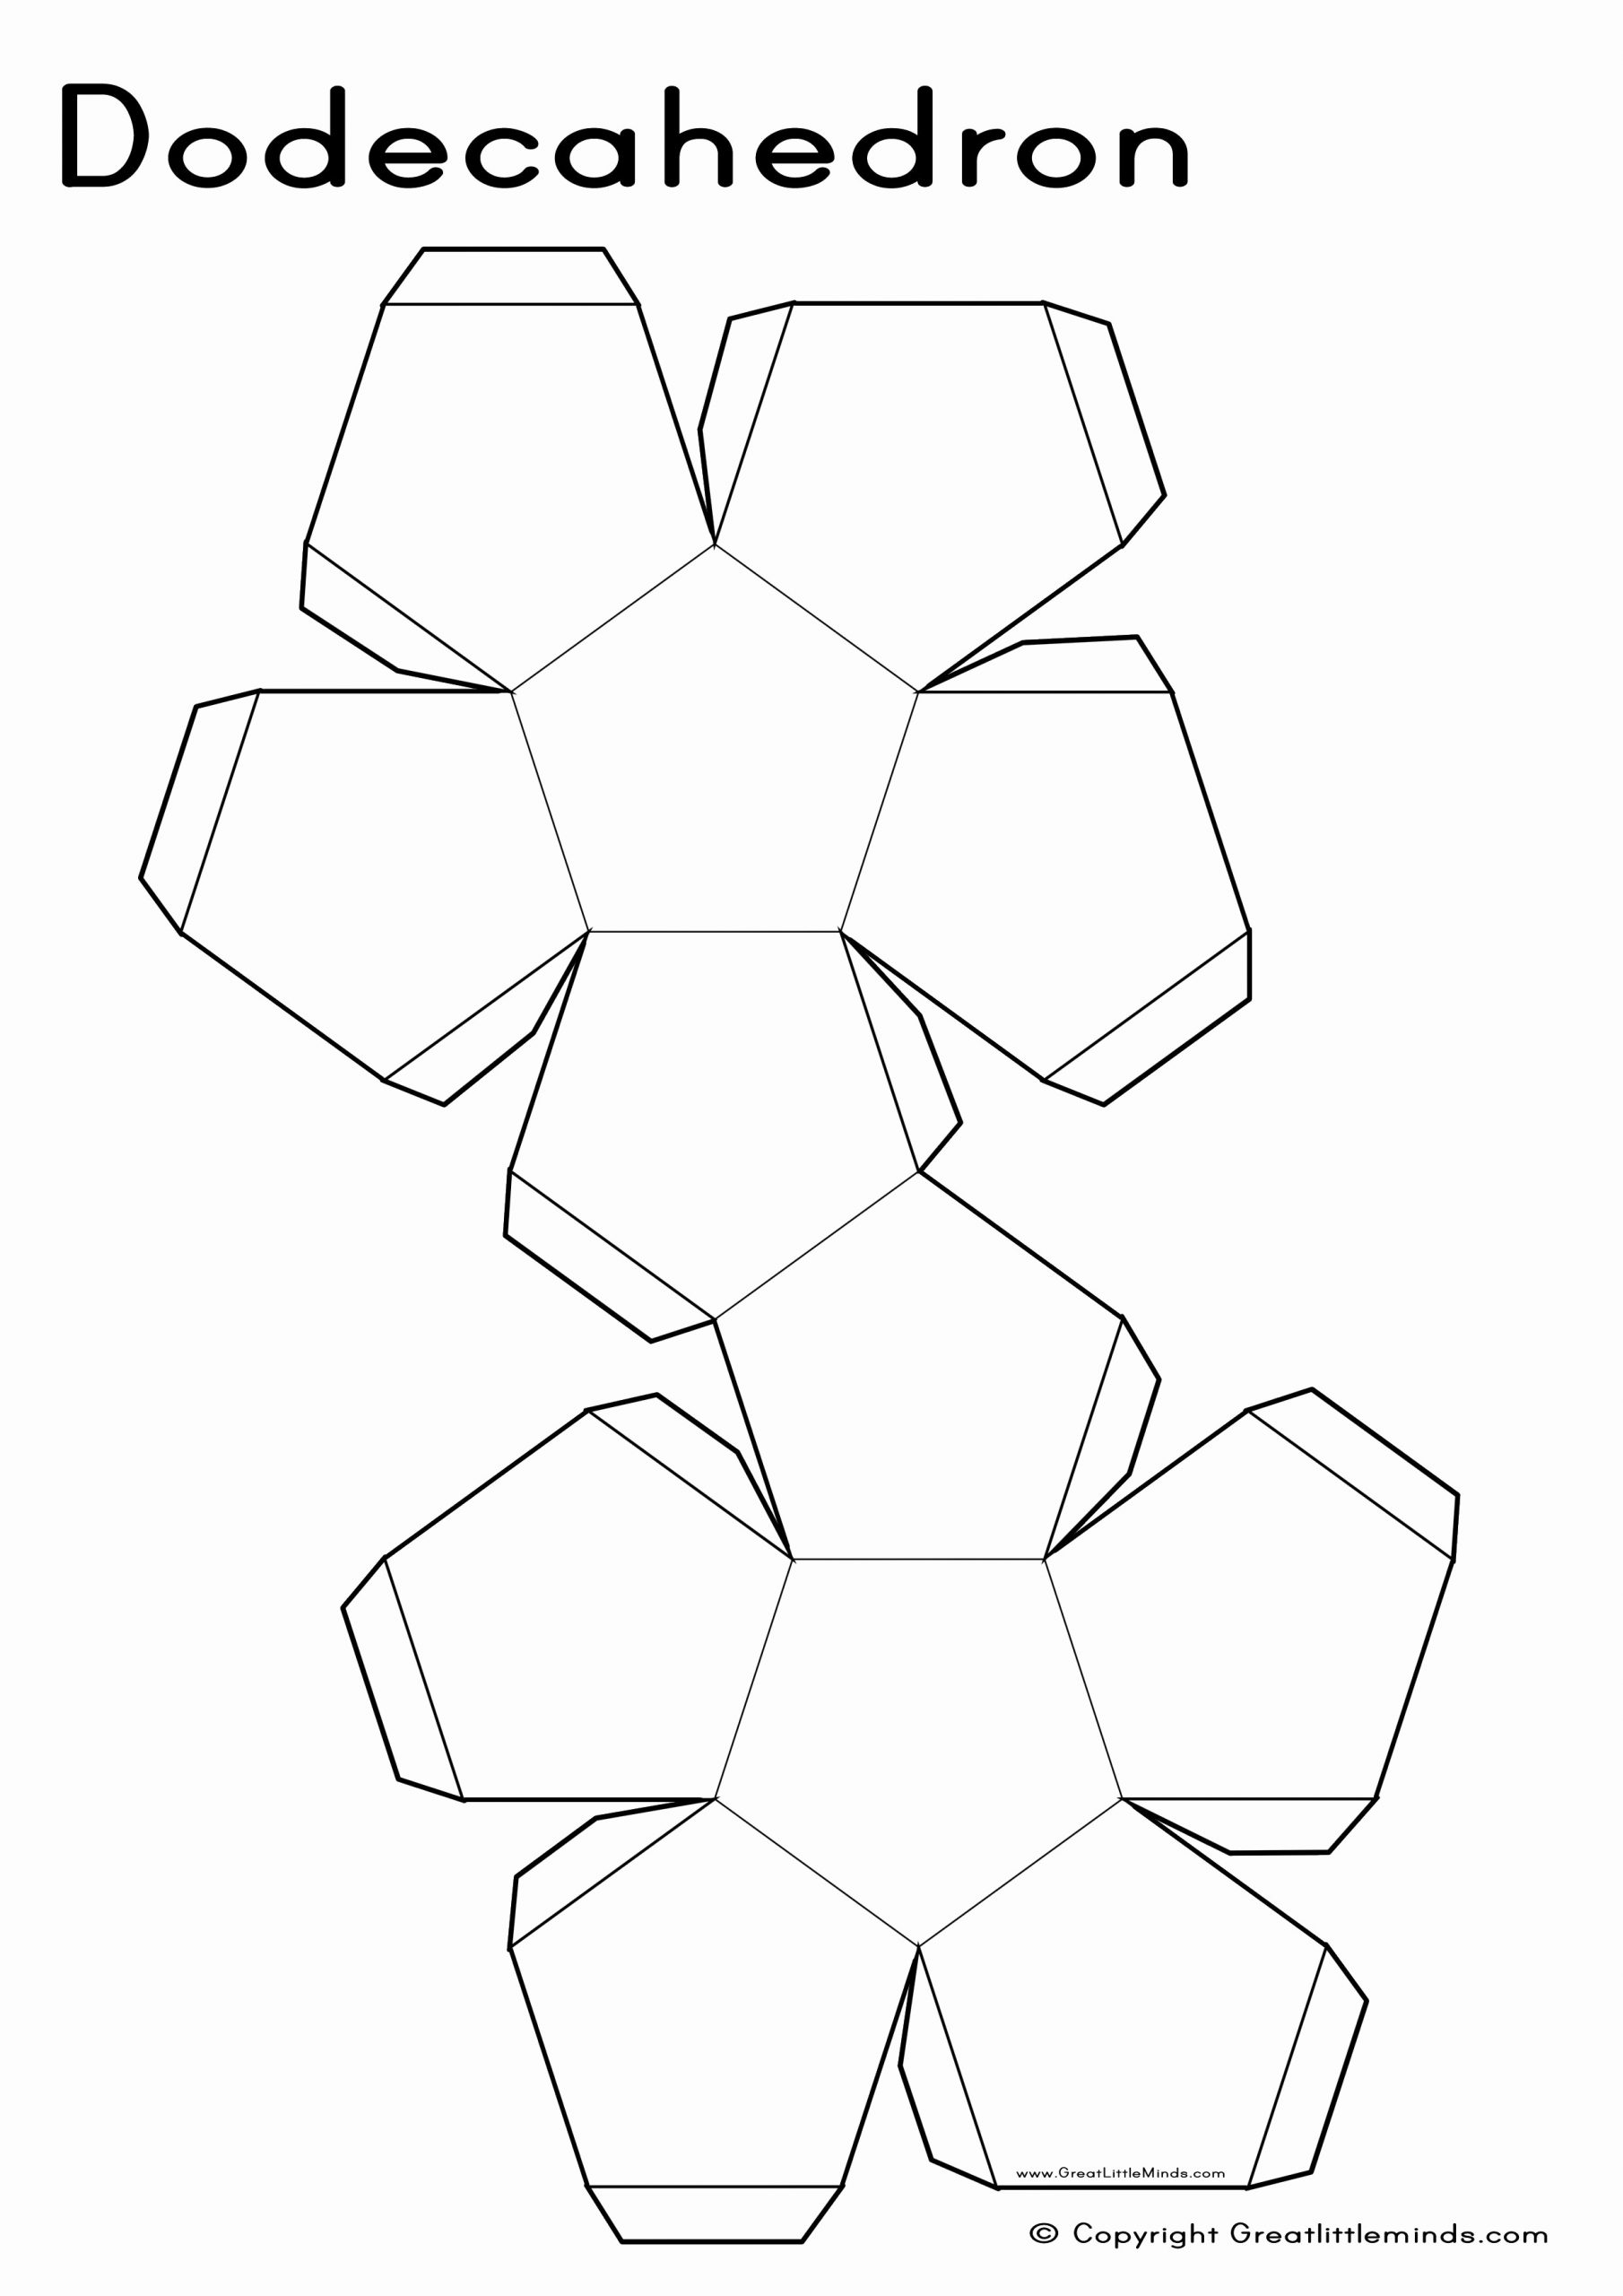 Geometric Shapes Patterns Worksheets Lovely 3d Nets Dodecahedron A4 2480×3508